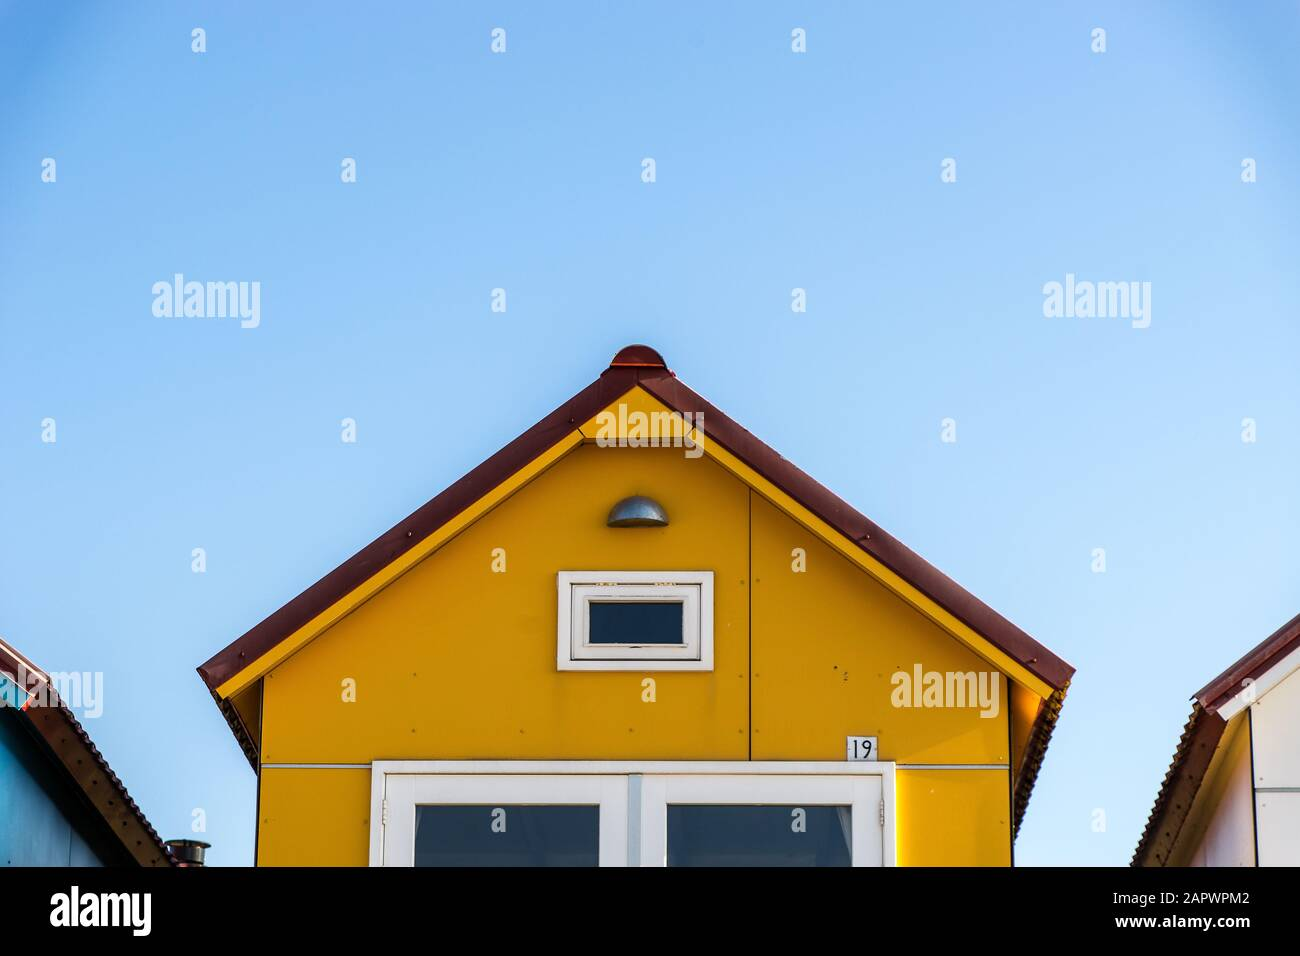 The Yellow Facade Of A Small House At The Camping De Nolle